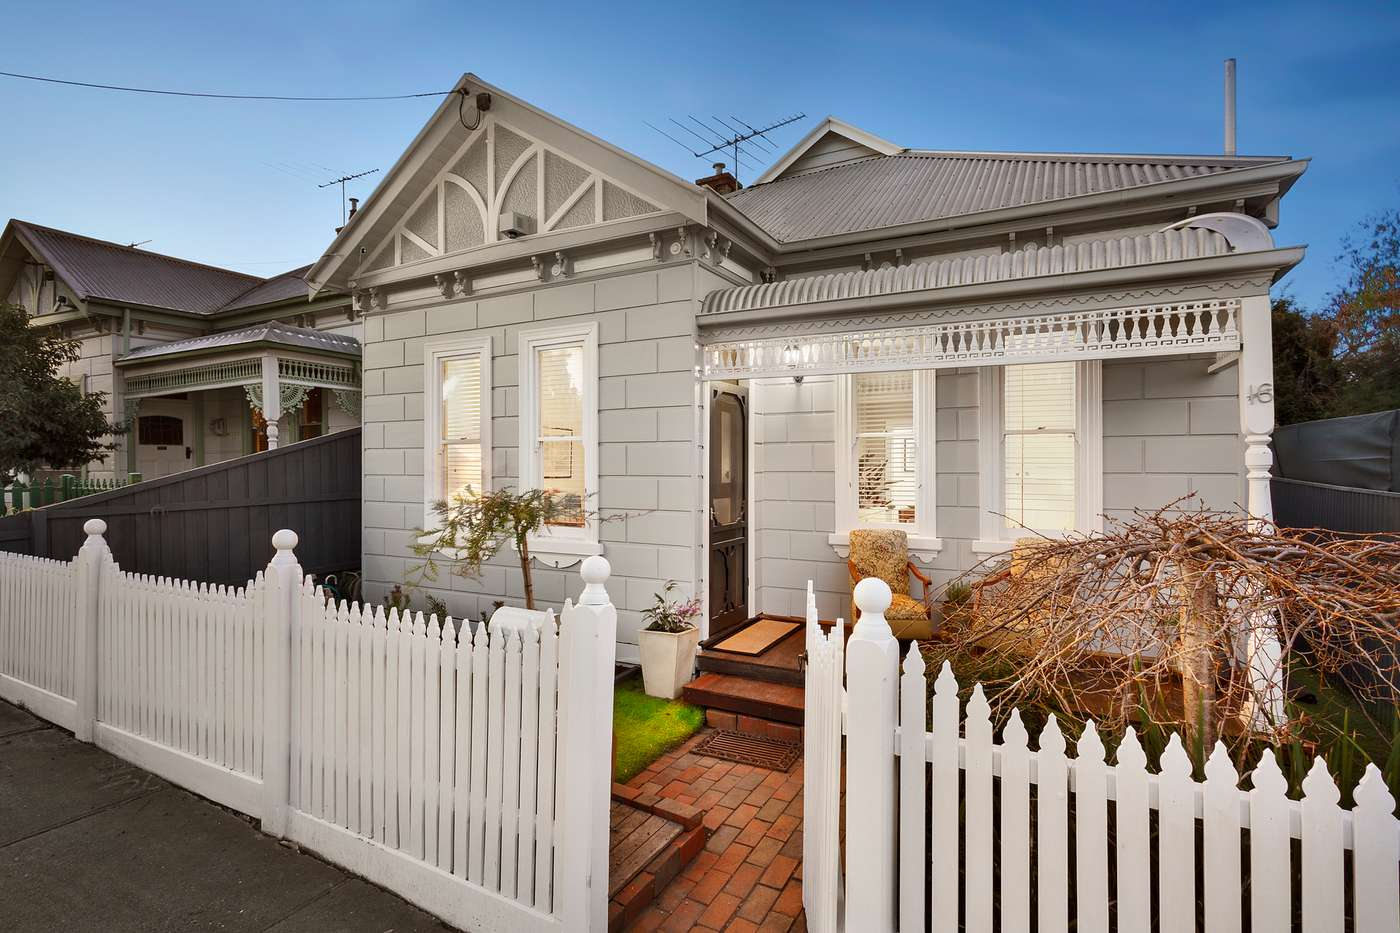 Main view of Homely house listing, 16 Pole Street, Seddon, VIC 3011